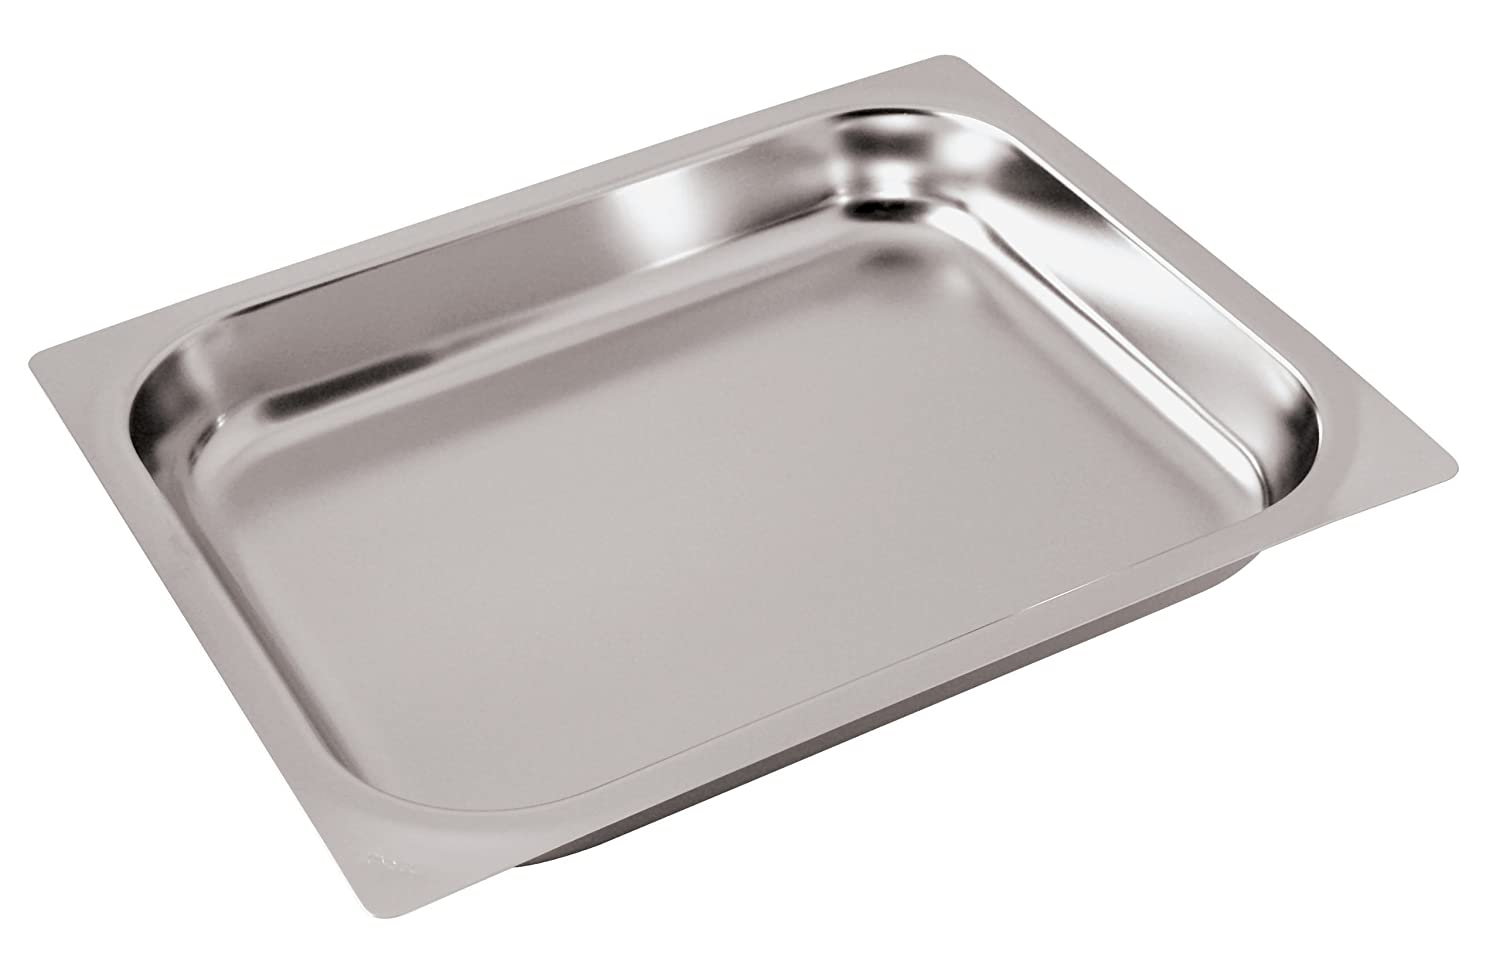 Paderno World Cuisine 12 1//2 inches by 10 1//2 inches Stainless-steel Baking Sheet for Hotel Pan depth: 3//4 inches 1//2